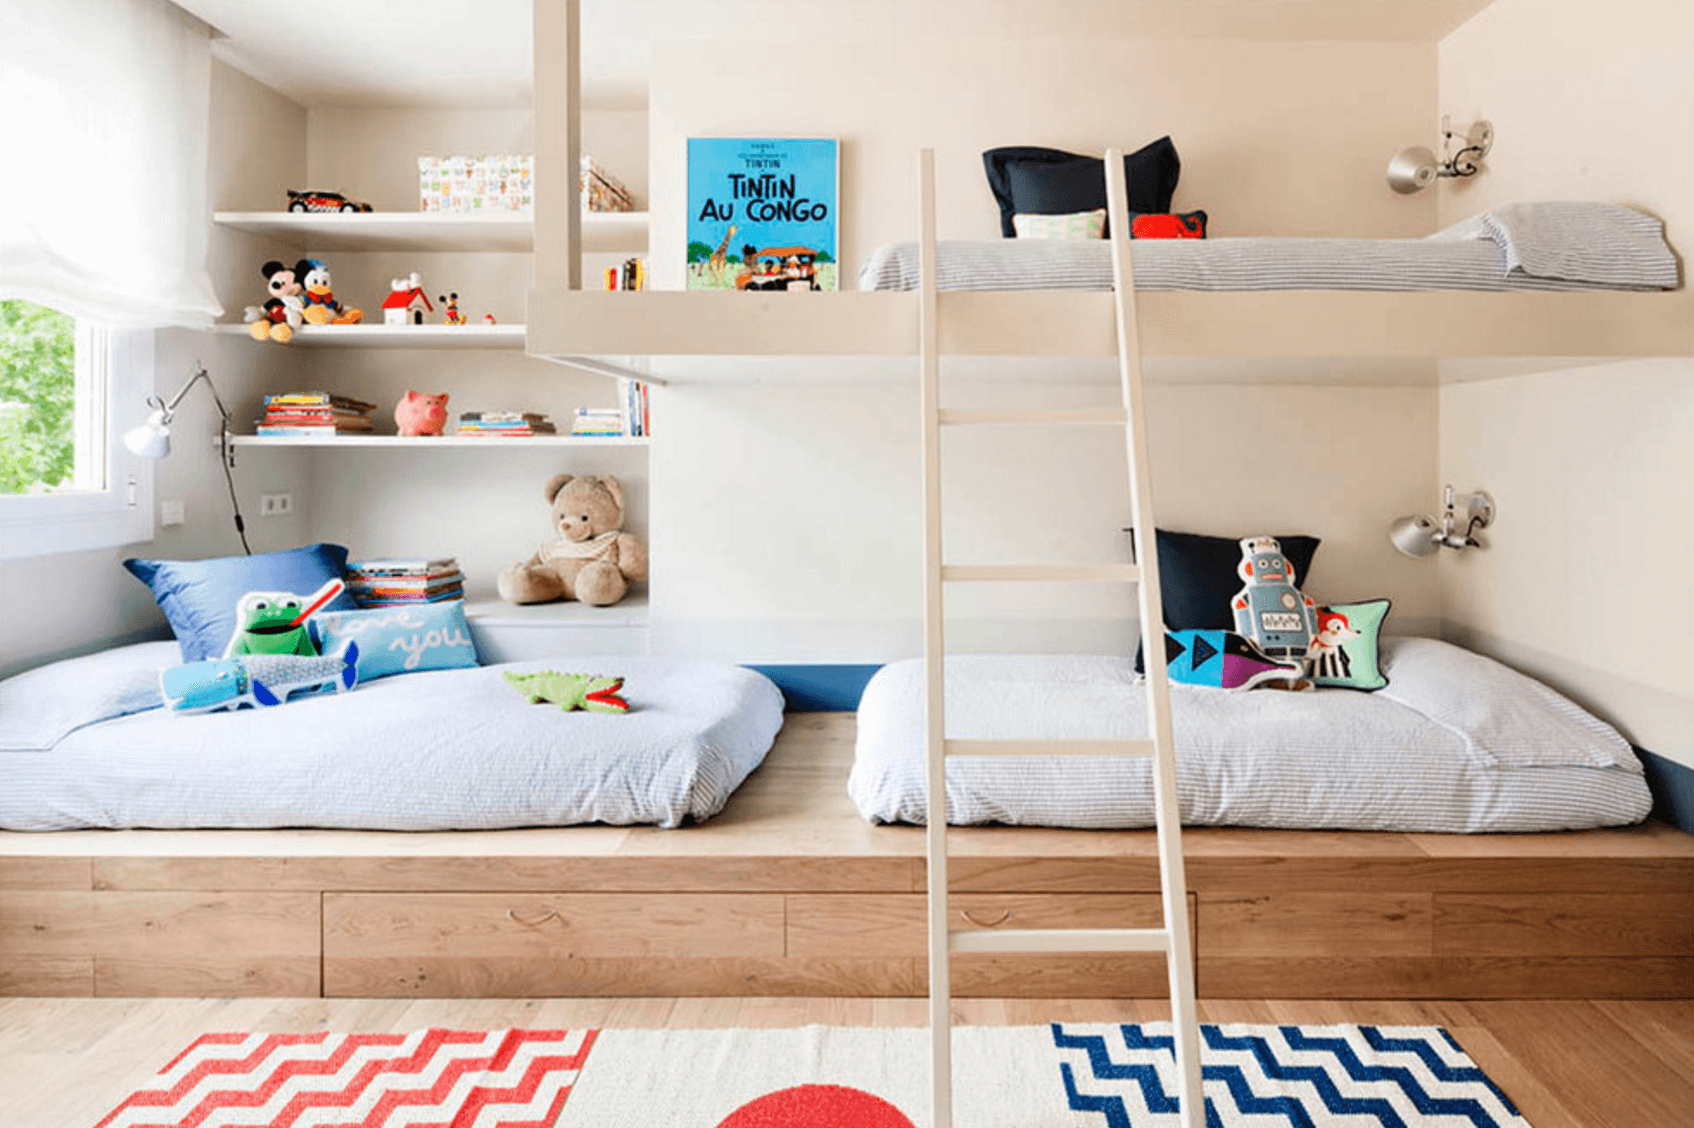 Creative Shared Bedroom Ideas For A Modern Kids Room Freshome Com Laughing Crying Playing Fighting In 2020 Bunk Bed Designs Kids Shared Bedroom Modern Kids Room